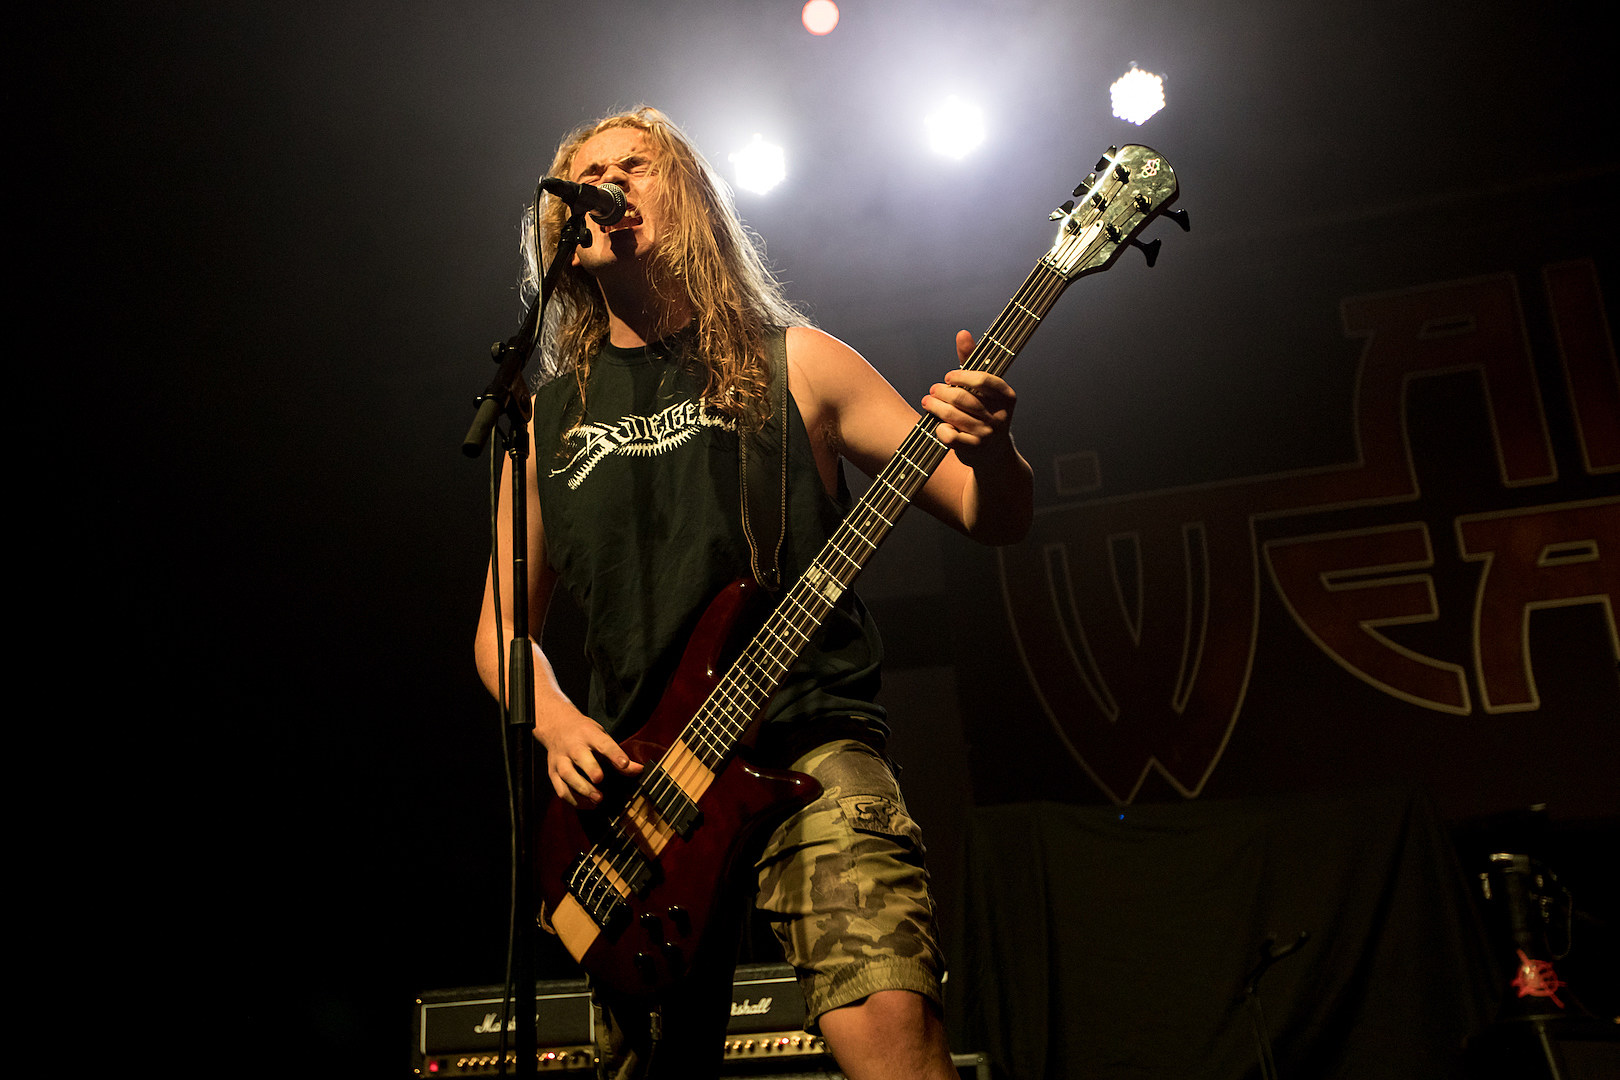 Alien Weaponry Bassist Will Miss Fall Tour to Finish High School